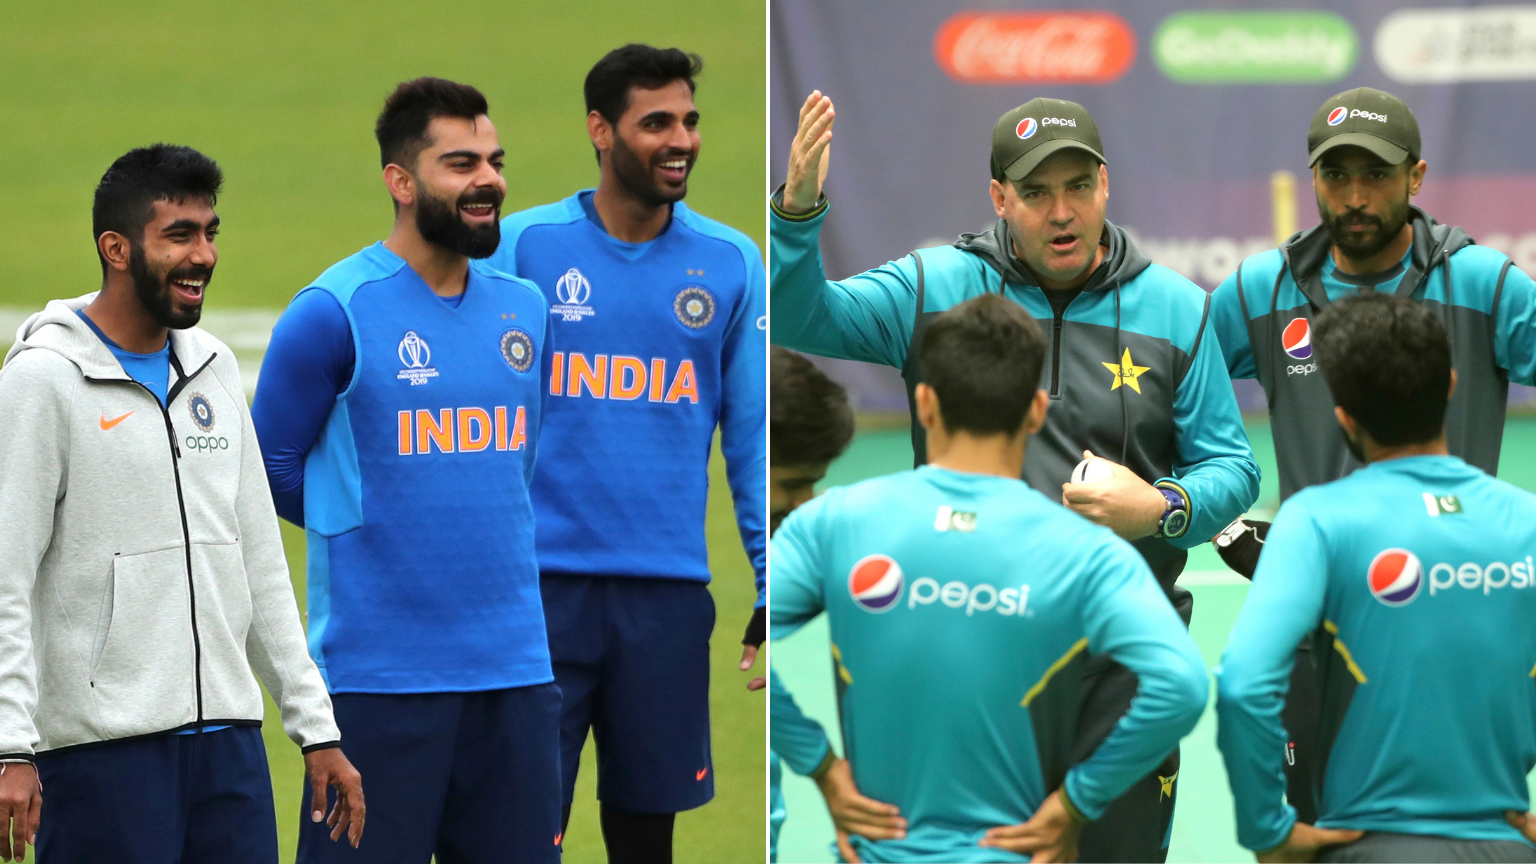 India and Pakistan Evenly Matched Despite the Gulf in Rankings